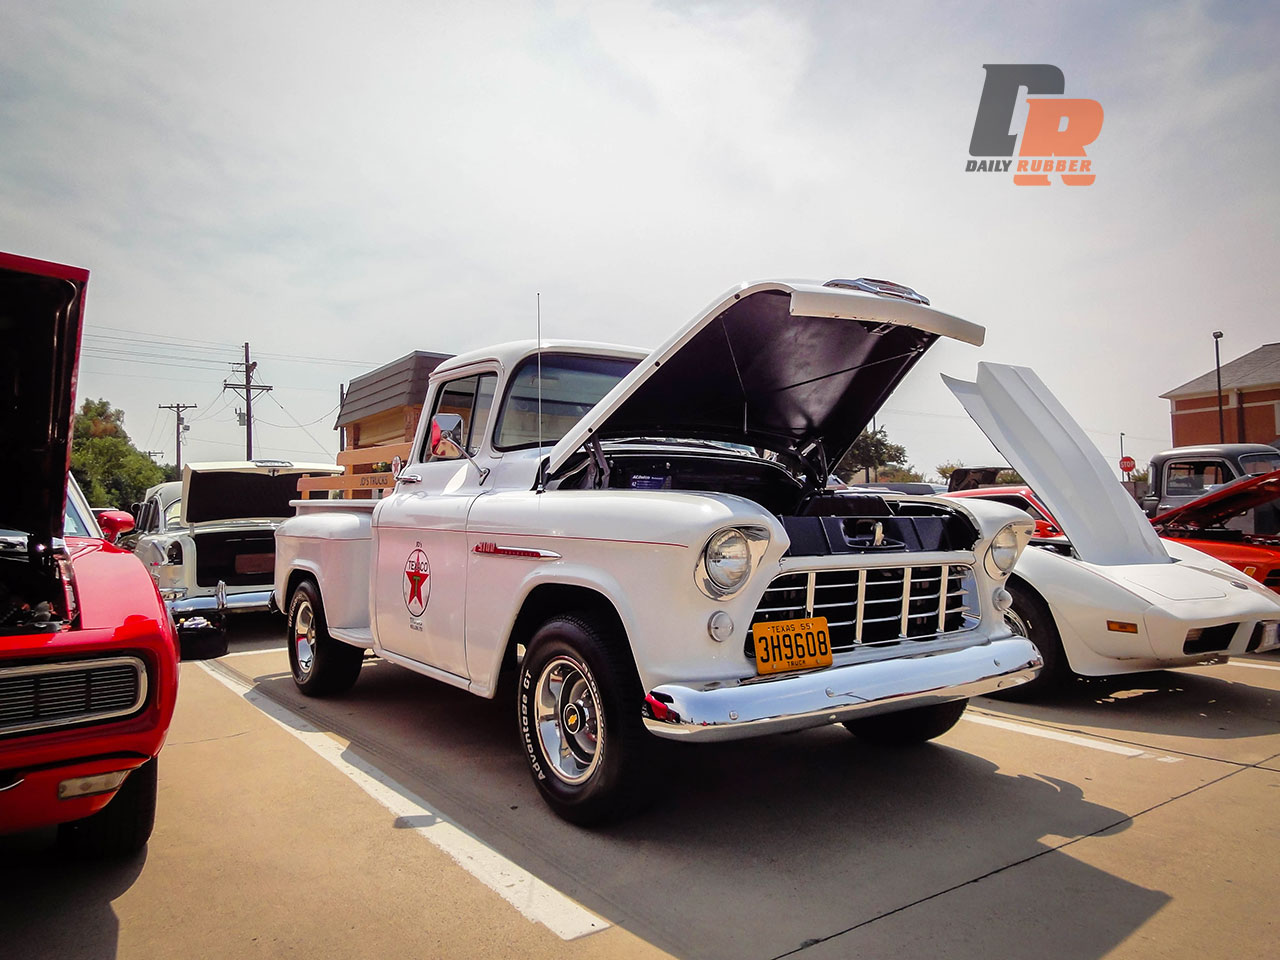 Car Shows Dfw >> What We Saw At The Club 407 Cruise-In Car Show This Weekend